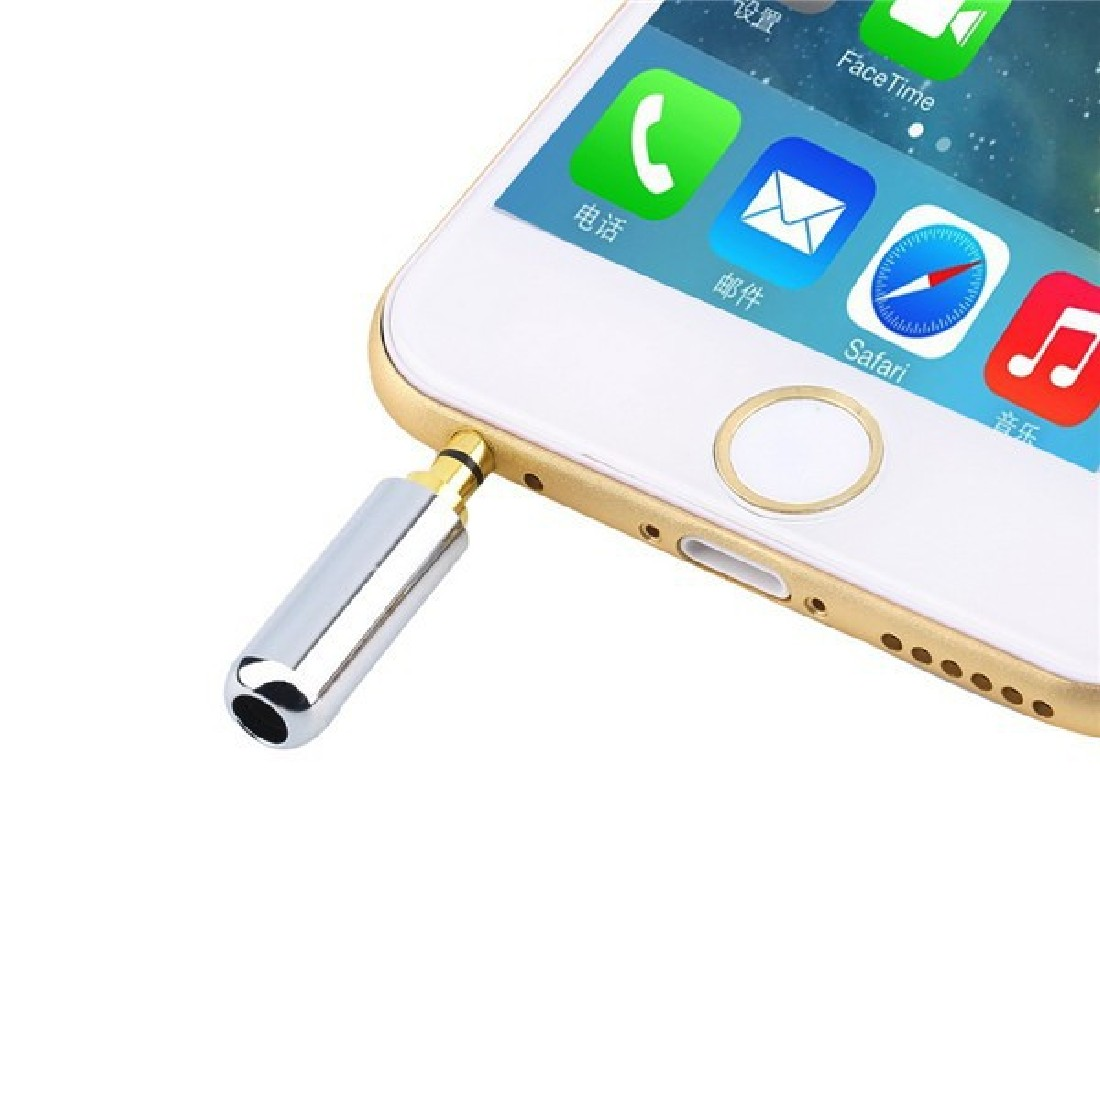 New 1pc 3.5 mm 1/8 Stereo Jack Plug 4 Poles Dual Channel Cover Connector Plugs for Headphone Earphone Soldering 3 poles 3 5mm audio gold plated headphone plug 3 5 rca connectors jack connector plug jack stereo headset dual track 4pcs